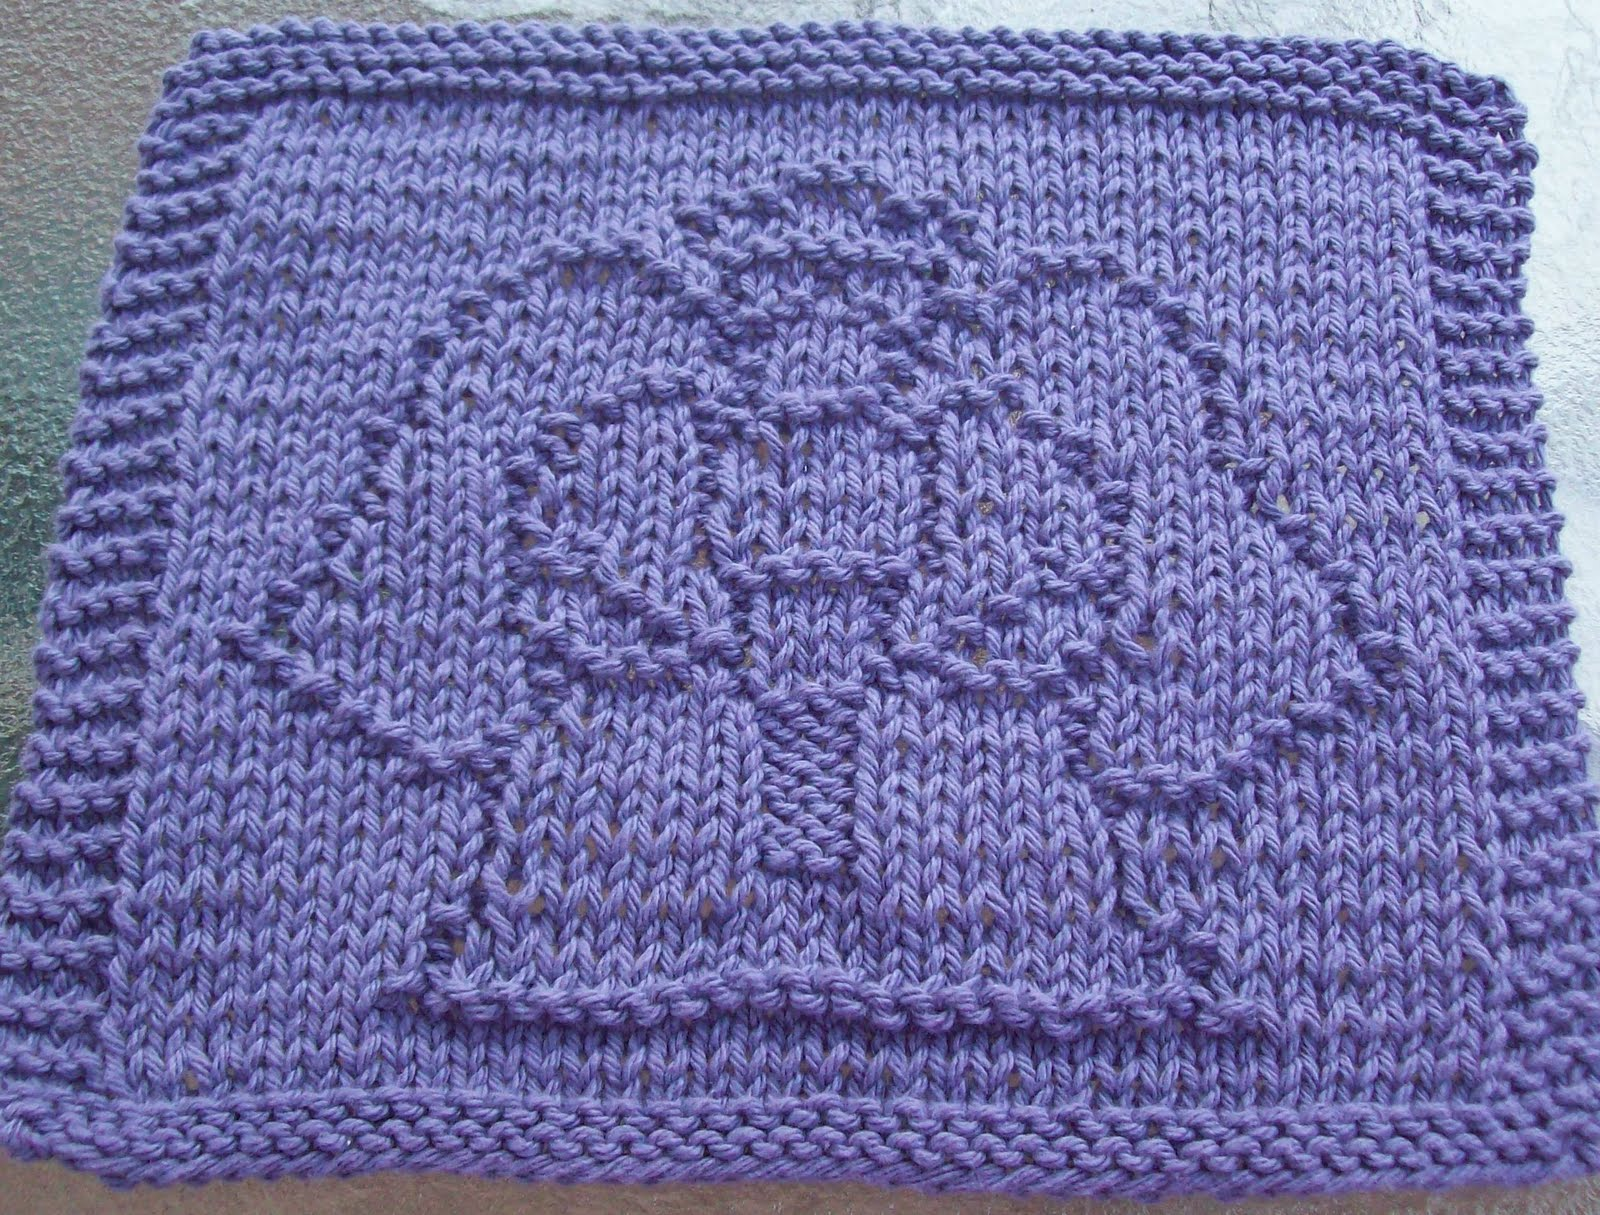 Knitting Crochet Patterns : DigKnitty Designs: Angel Knitting Knit Dishcloth Pattern